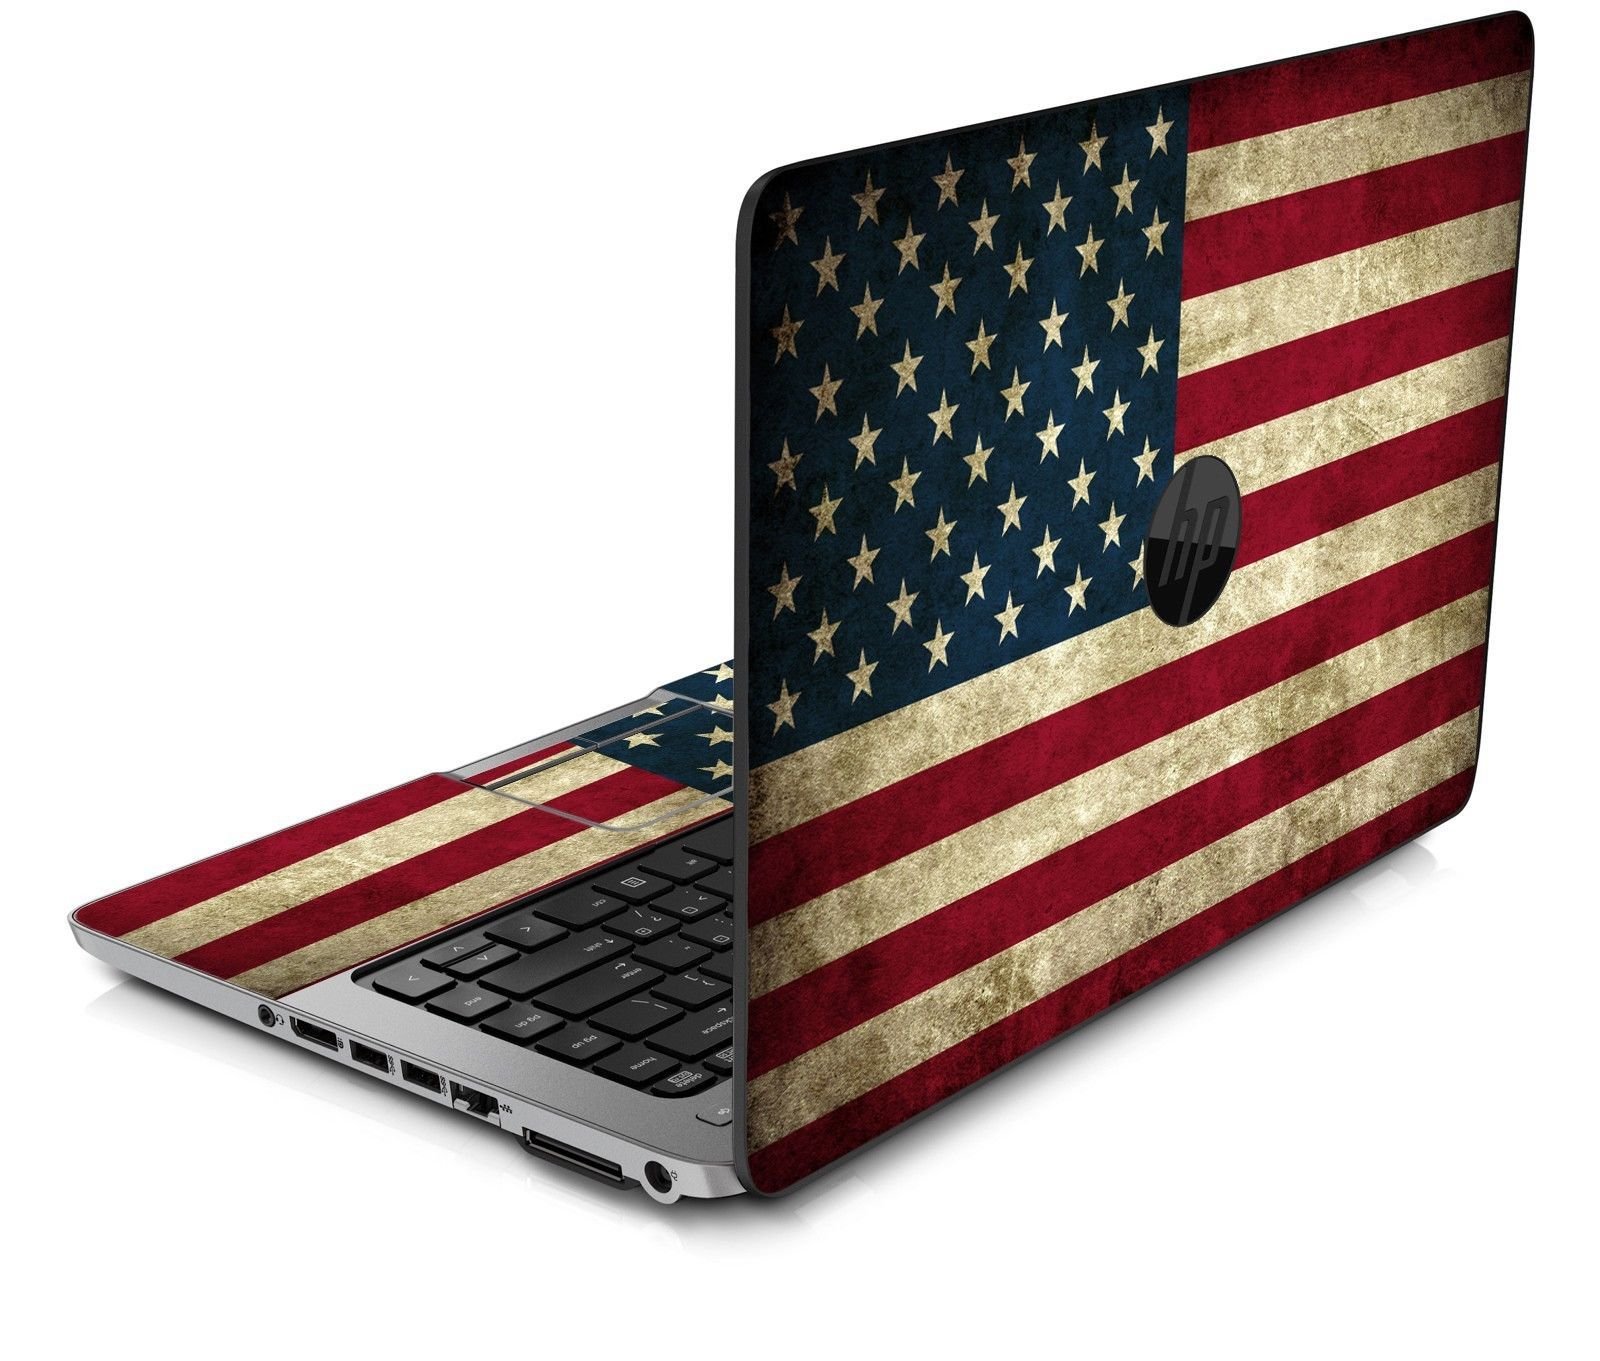 a5b0143ad Case Mods Stickers and Decals 175677: Lidstyles Printed Vinyl Laptop Skin  Protector Decal Hp Probook 650 G1 15.6 -> BUY IT NOW ONLY: $19.99 on #eBay  ...